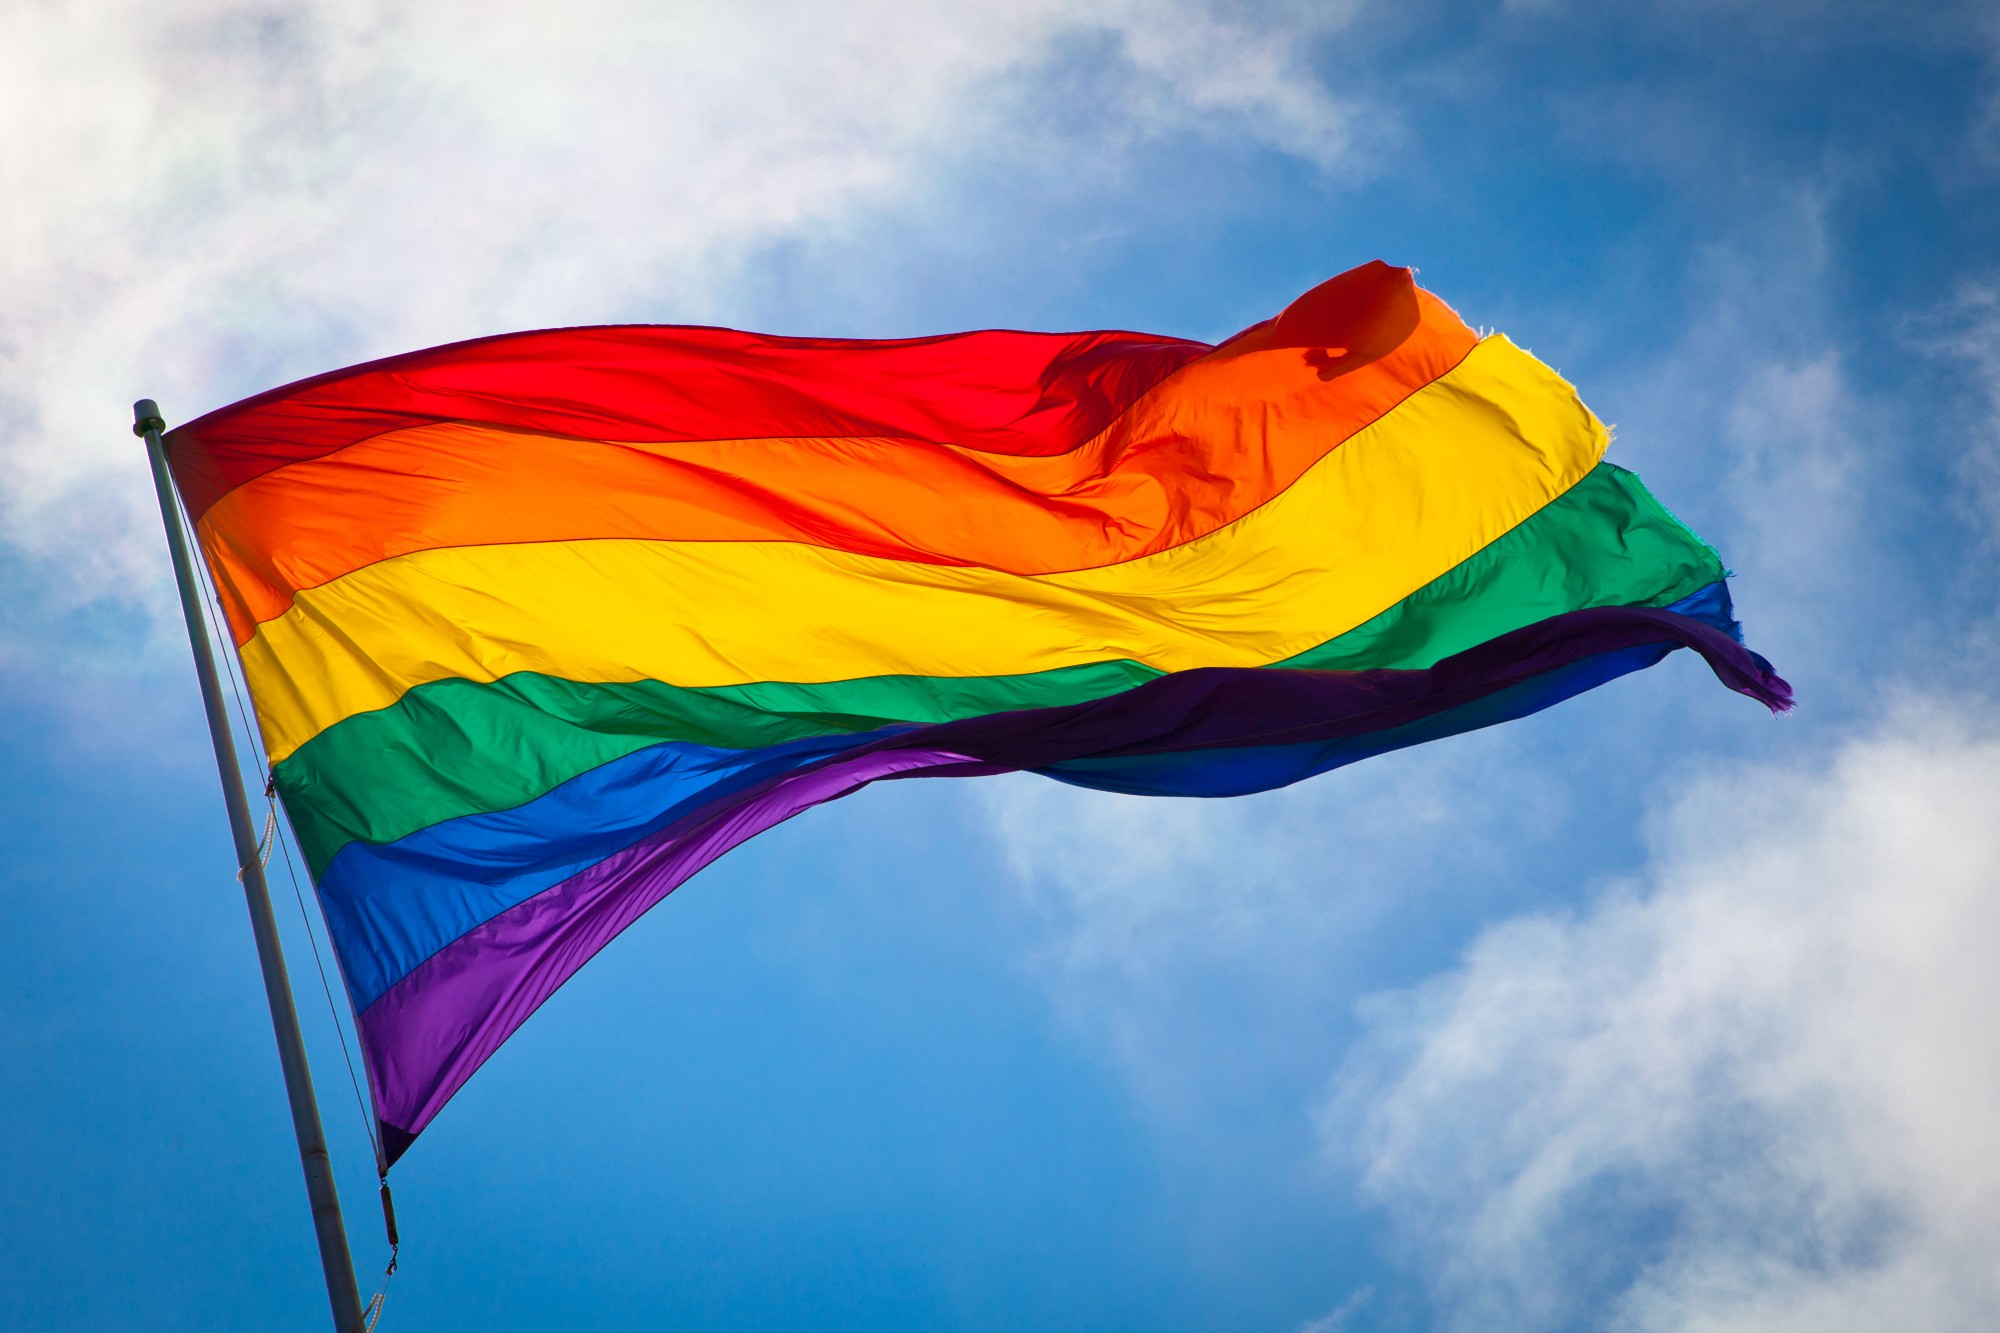 Remembering Gilbert Baker designer of the Rainbow Flag